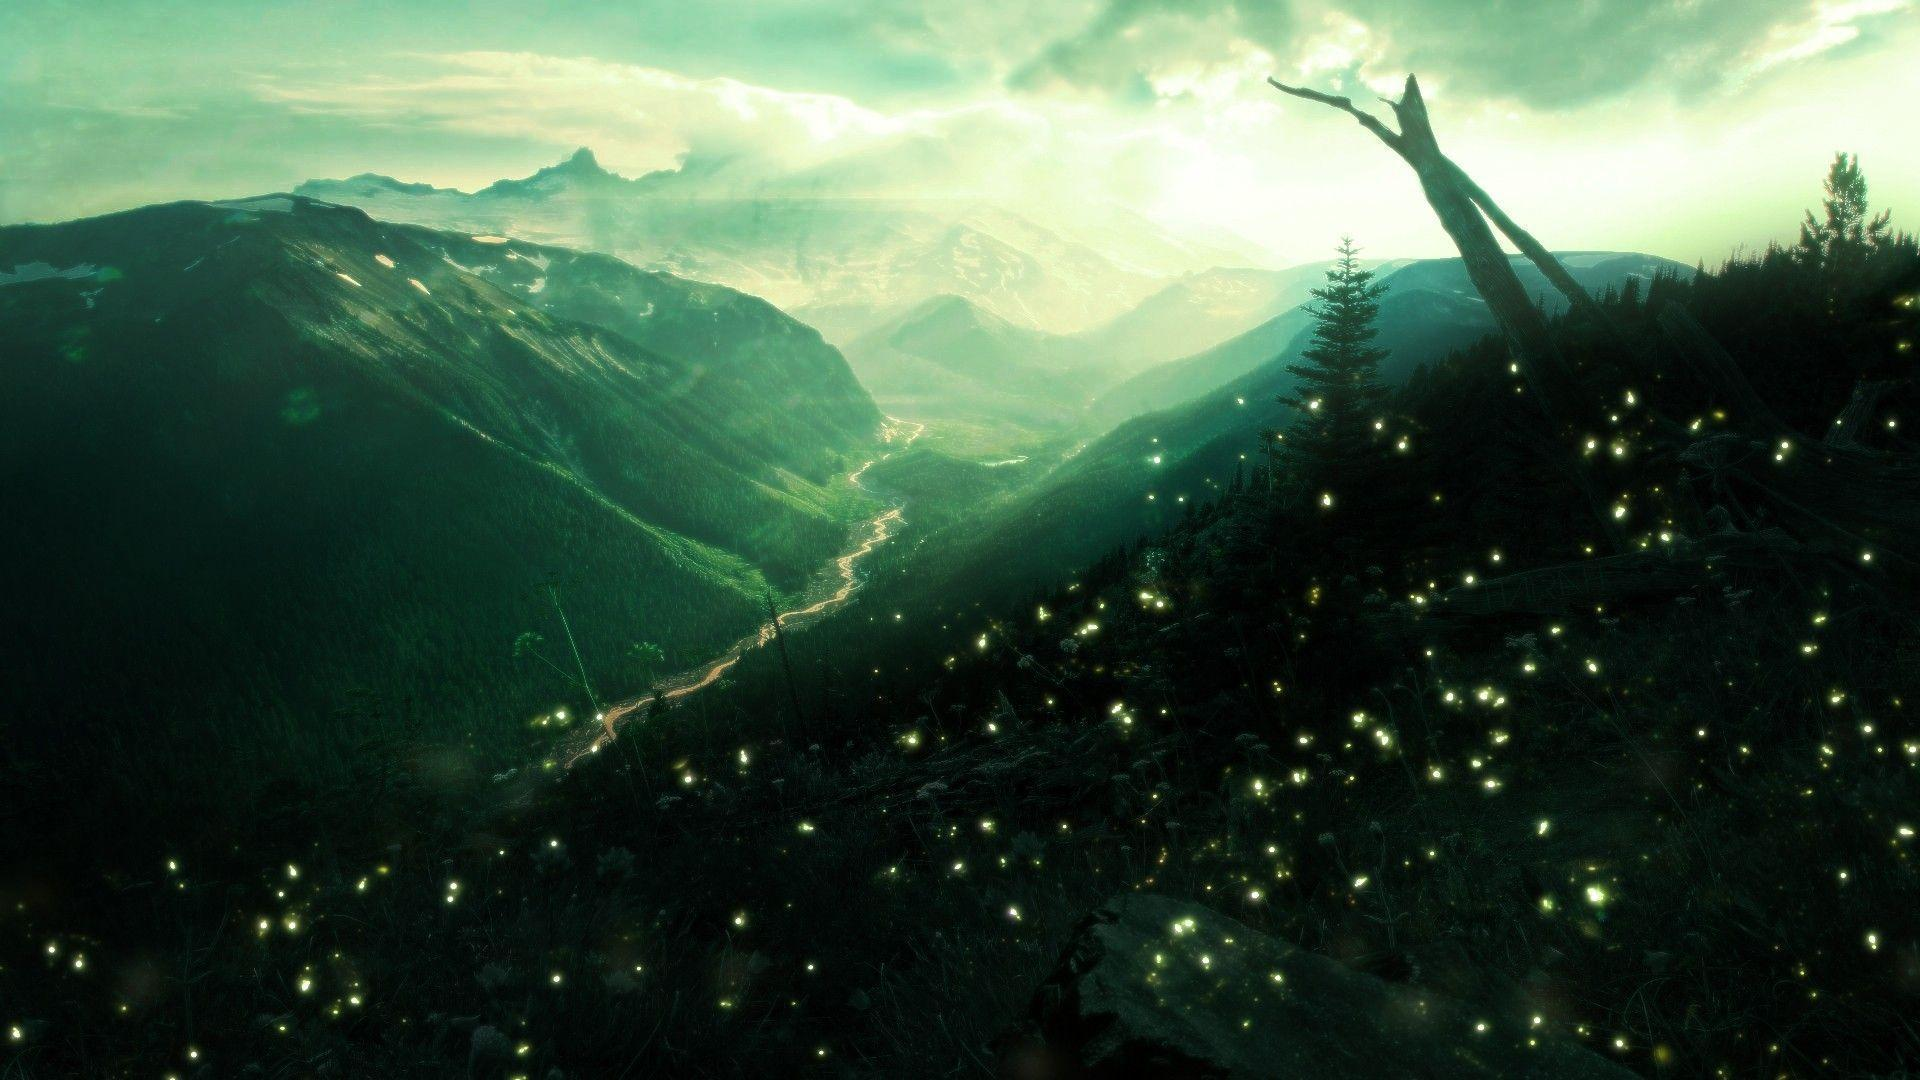 Valley Green Landscapes Mountains insects firefly fireflies sky ...